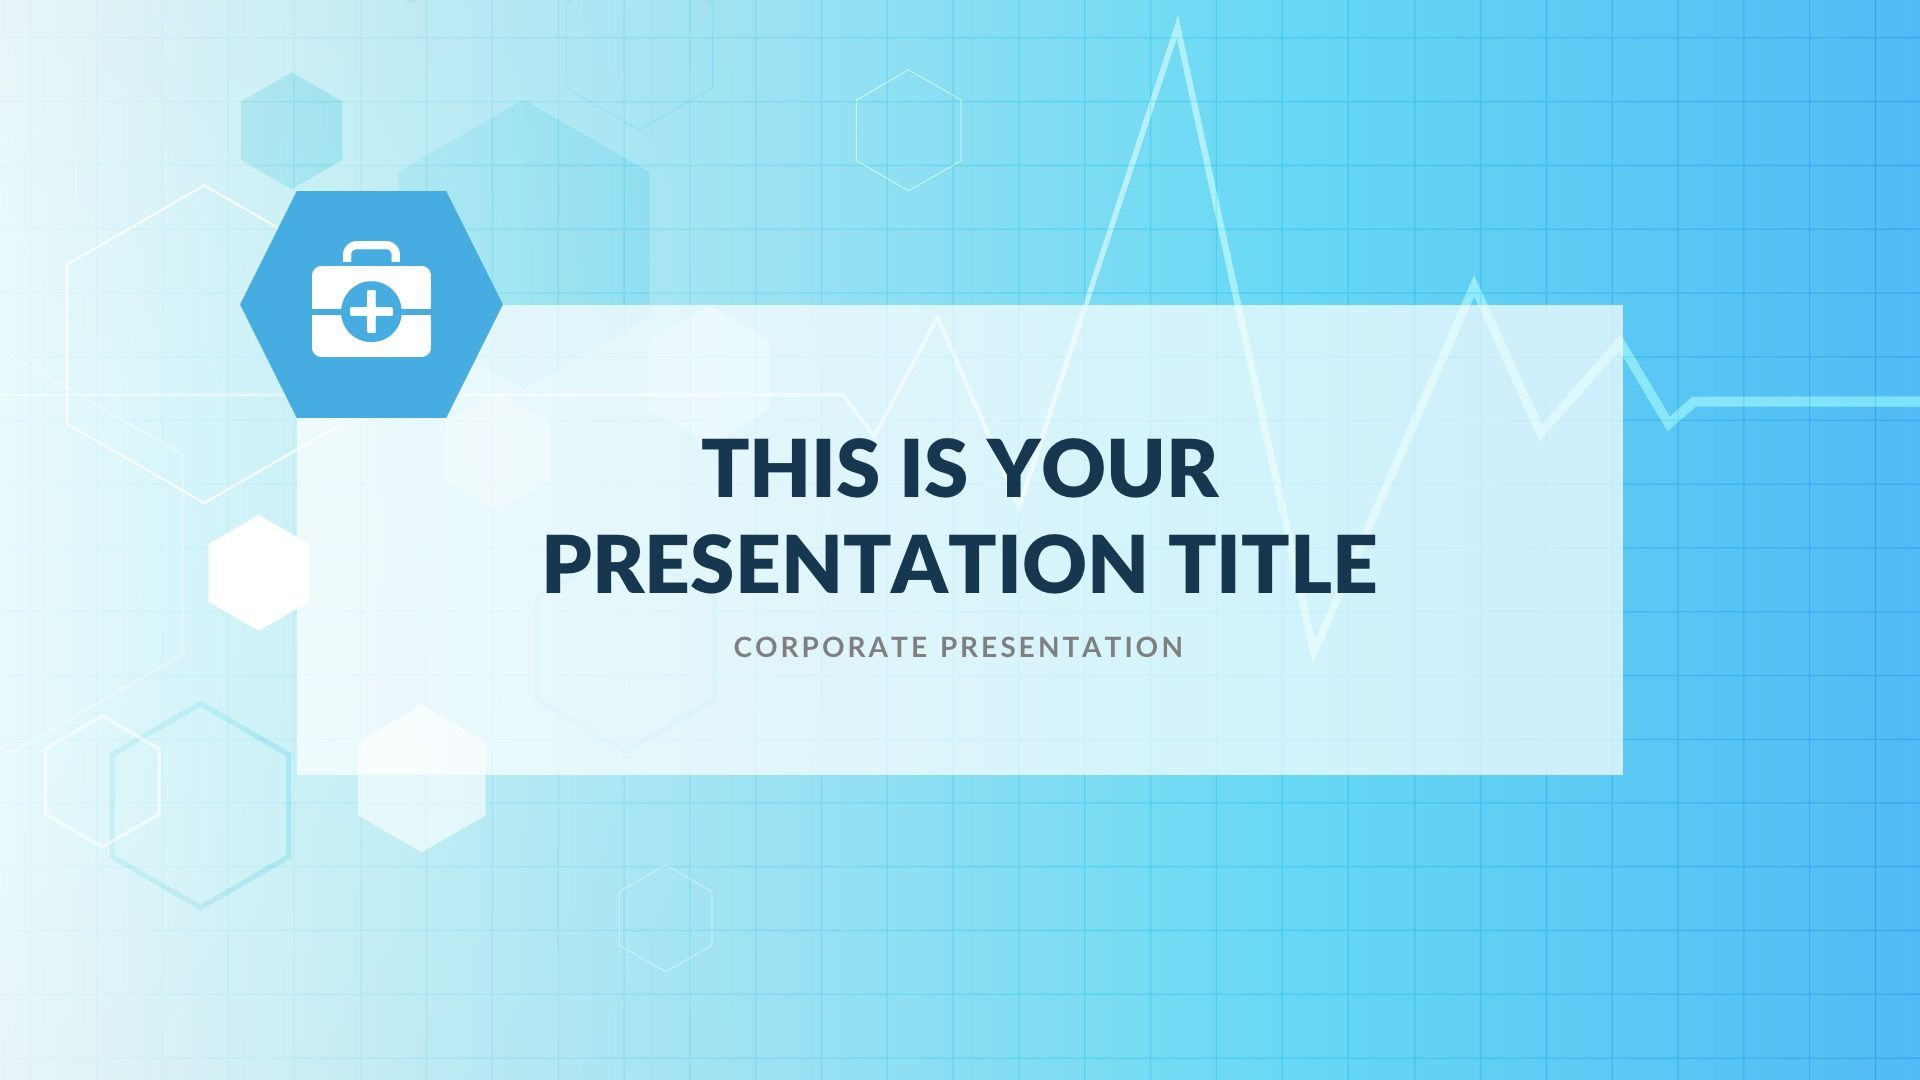 000 Incredible Powerpoint Presentation Template Free Download Medical Picture  AnimatedFull